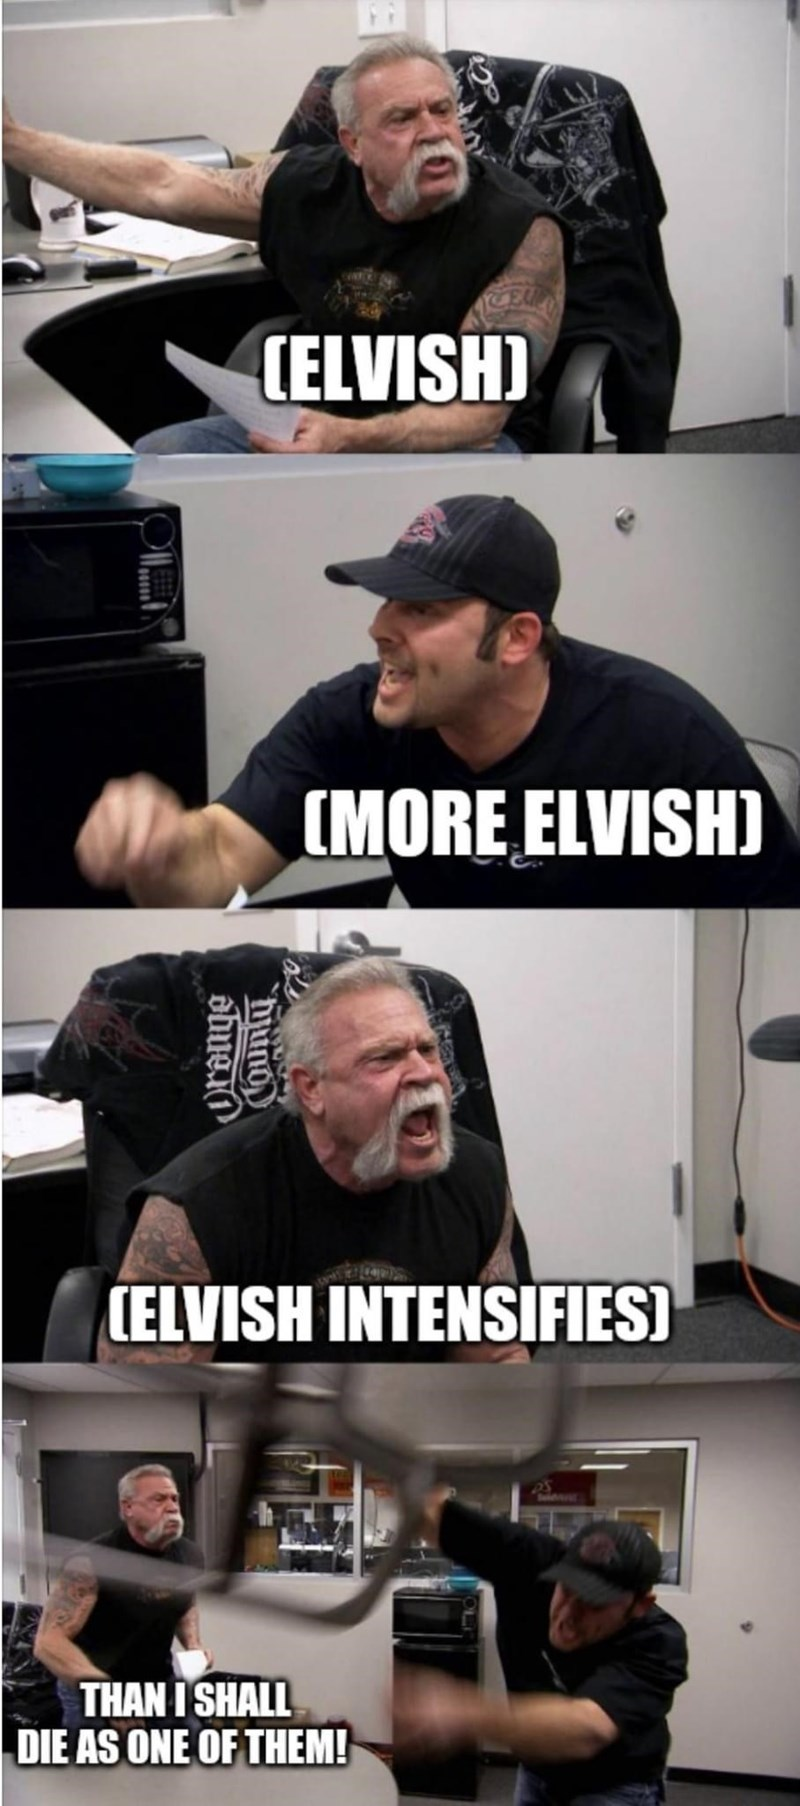 Muscle - CELVISH) (MORE ELVISH) (ELVISH INTENSIFIES) THAN I SHALL DIE AS ONE OF THEM! County